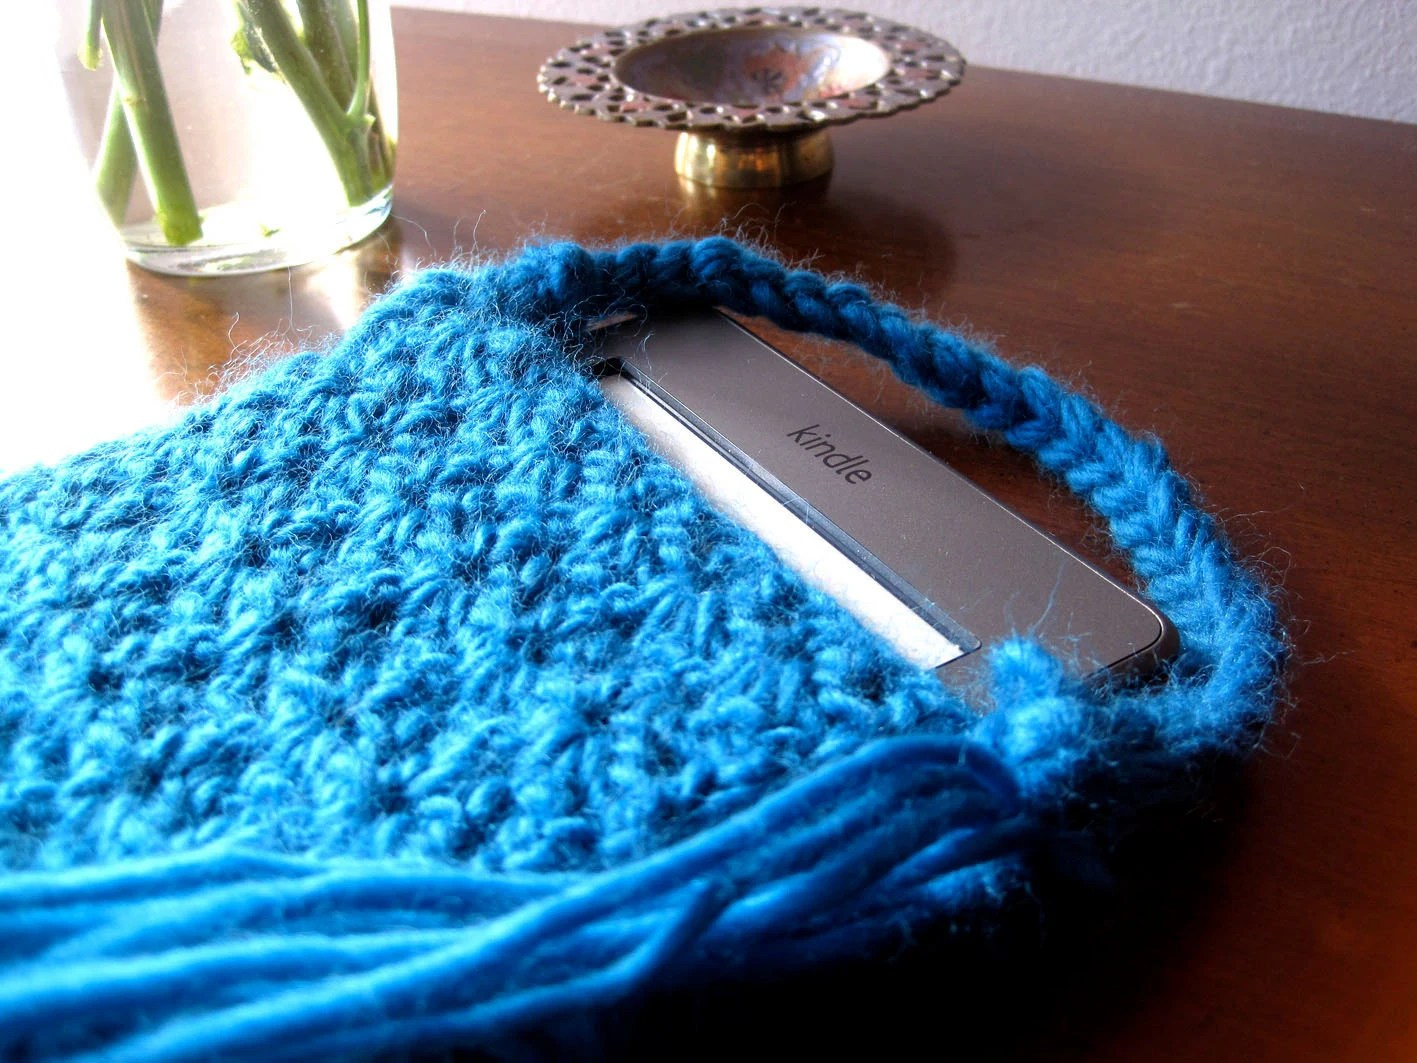 Eco-friendly Kindle Snug with Tassles - Chunky Crochet - 100% Peruvian Wool